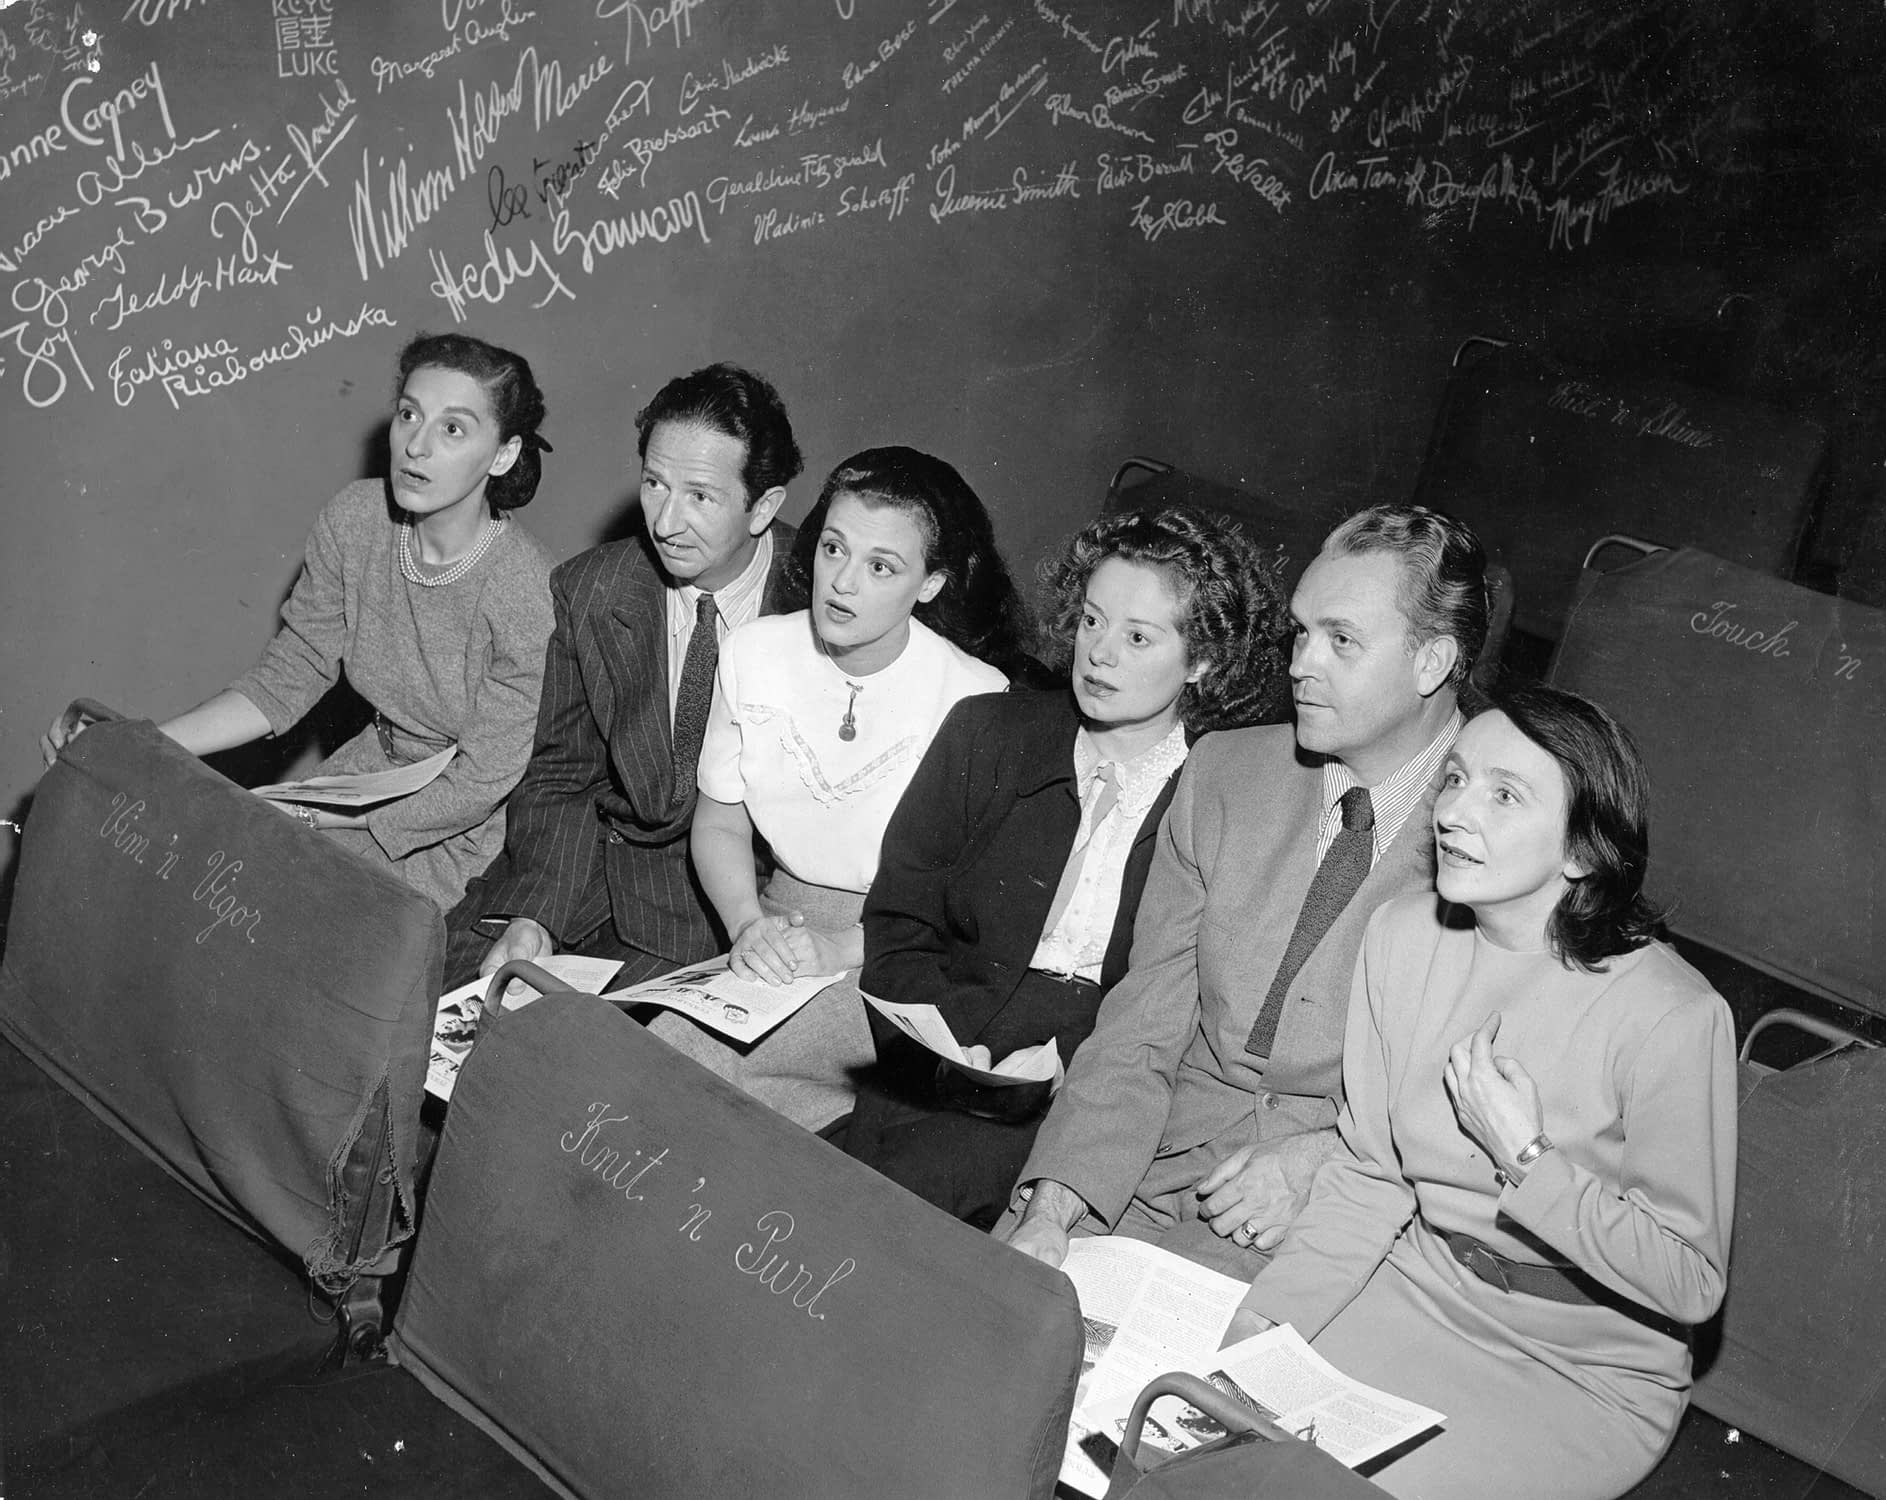 Dorothy Neumann, Harry Burnett, Frances Osborne, Elsa Lanchester, Forman Brown, and Lotte Gosler sit in the Turnabout Theater, with the autograph wall in the background.